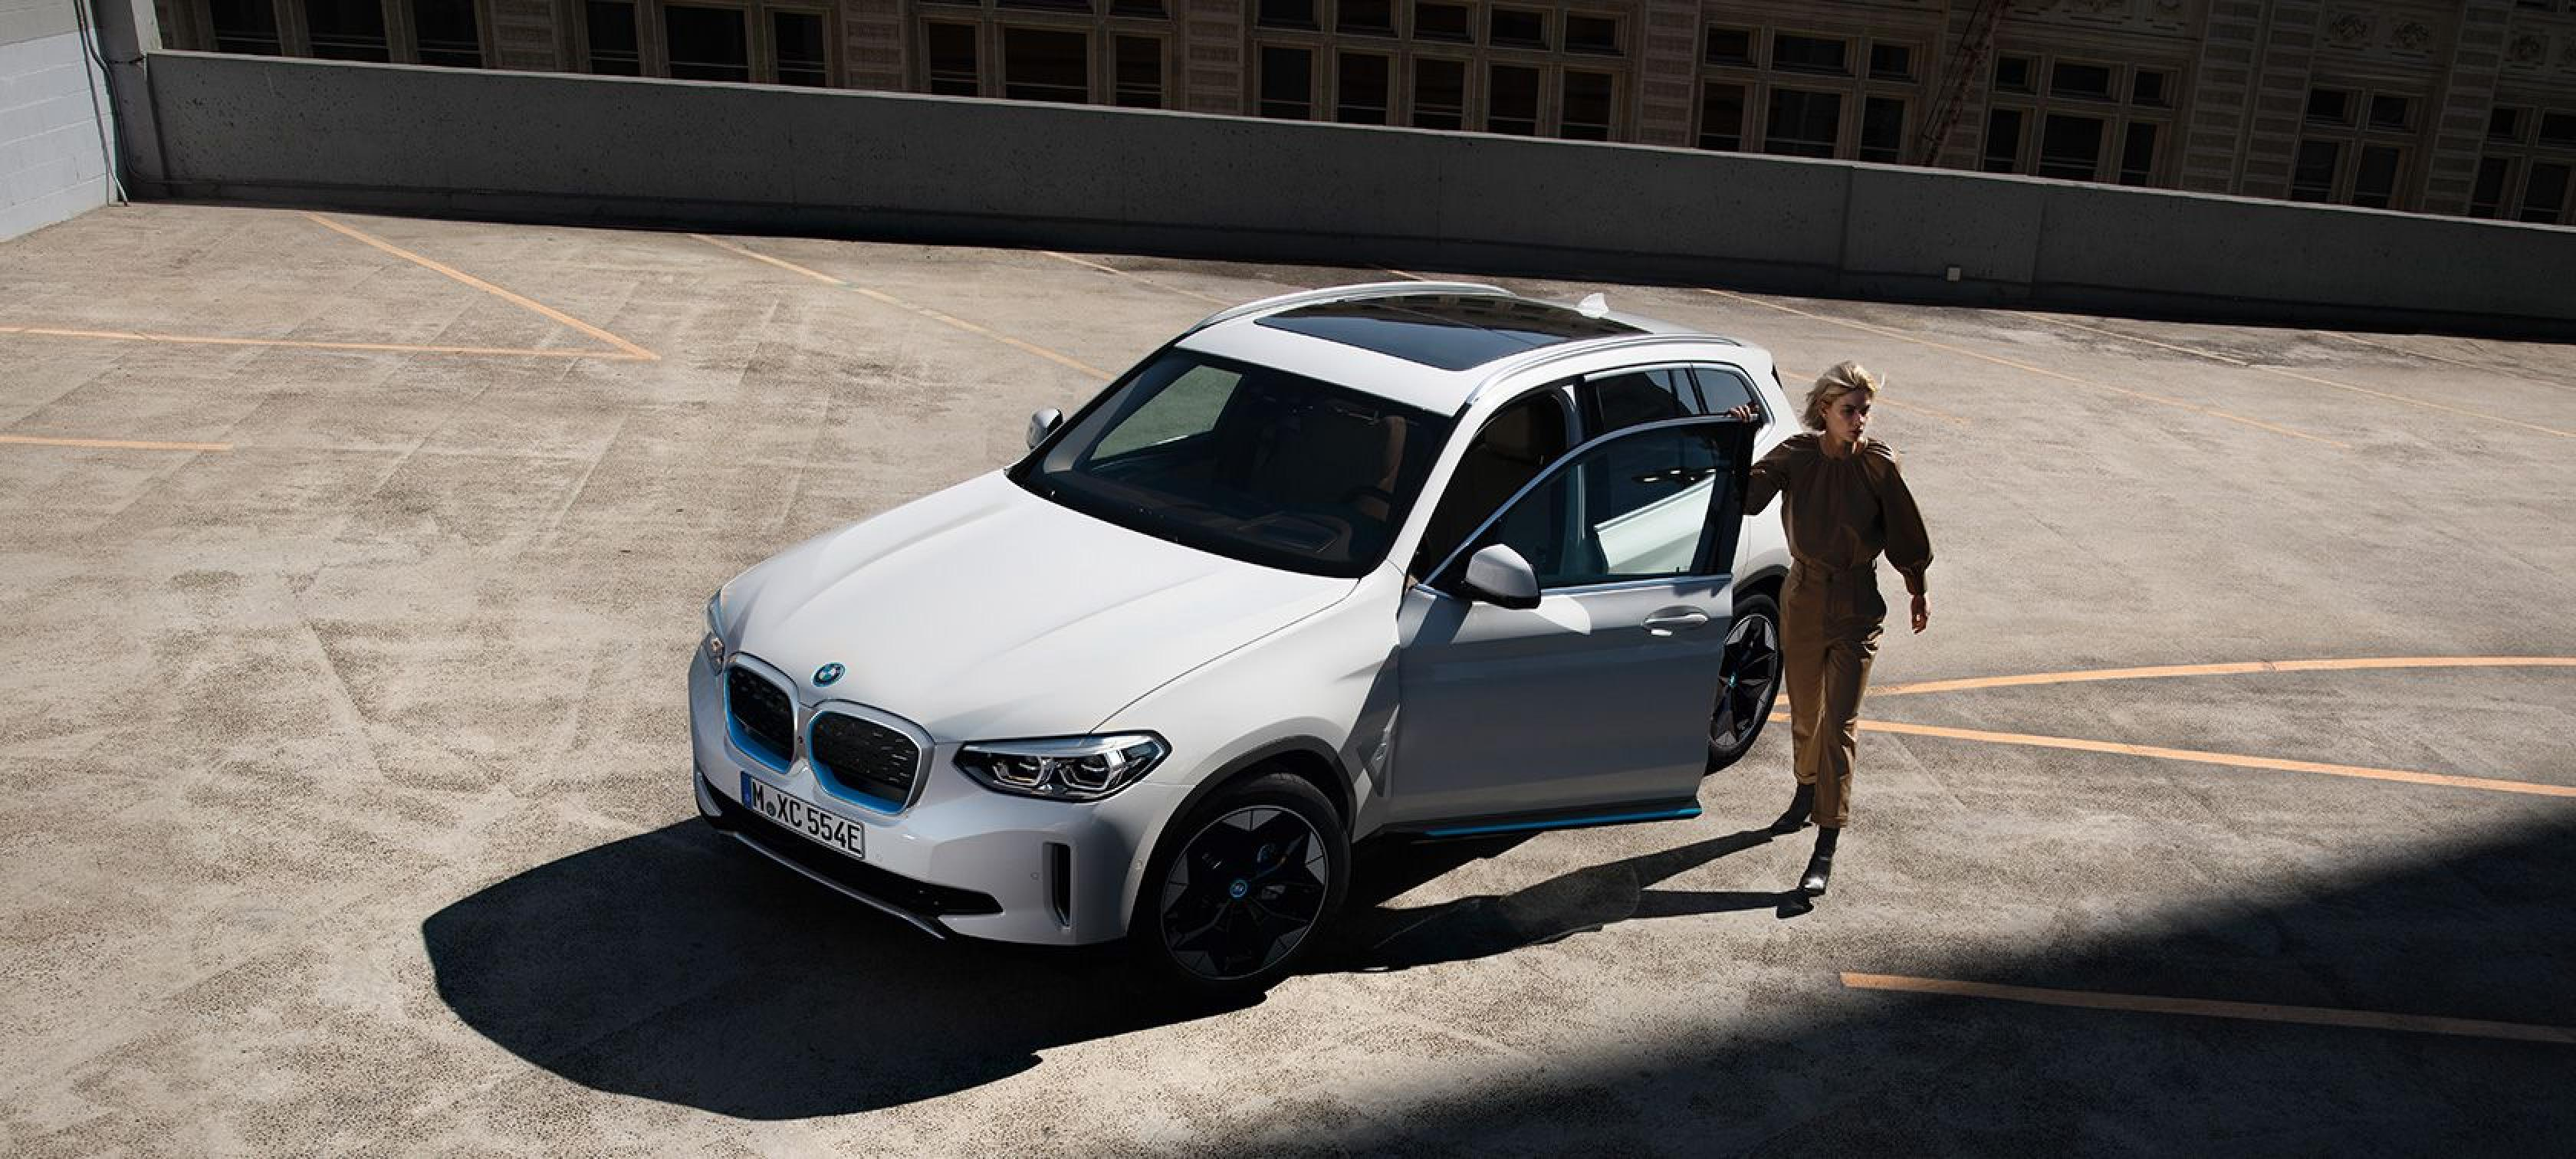 https://www.bmw.be/nl/all-models/x-series/iX3/2020/bmw-ix3-overzicht.html